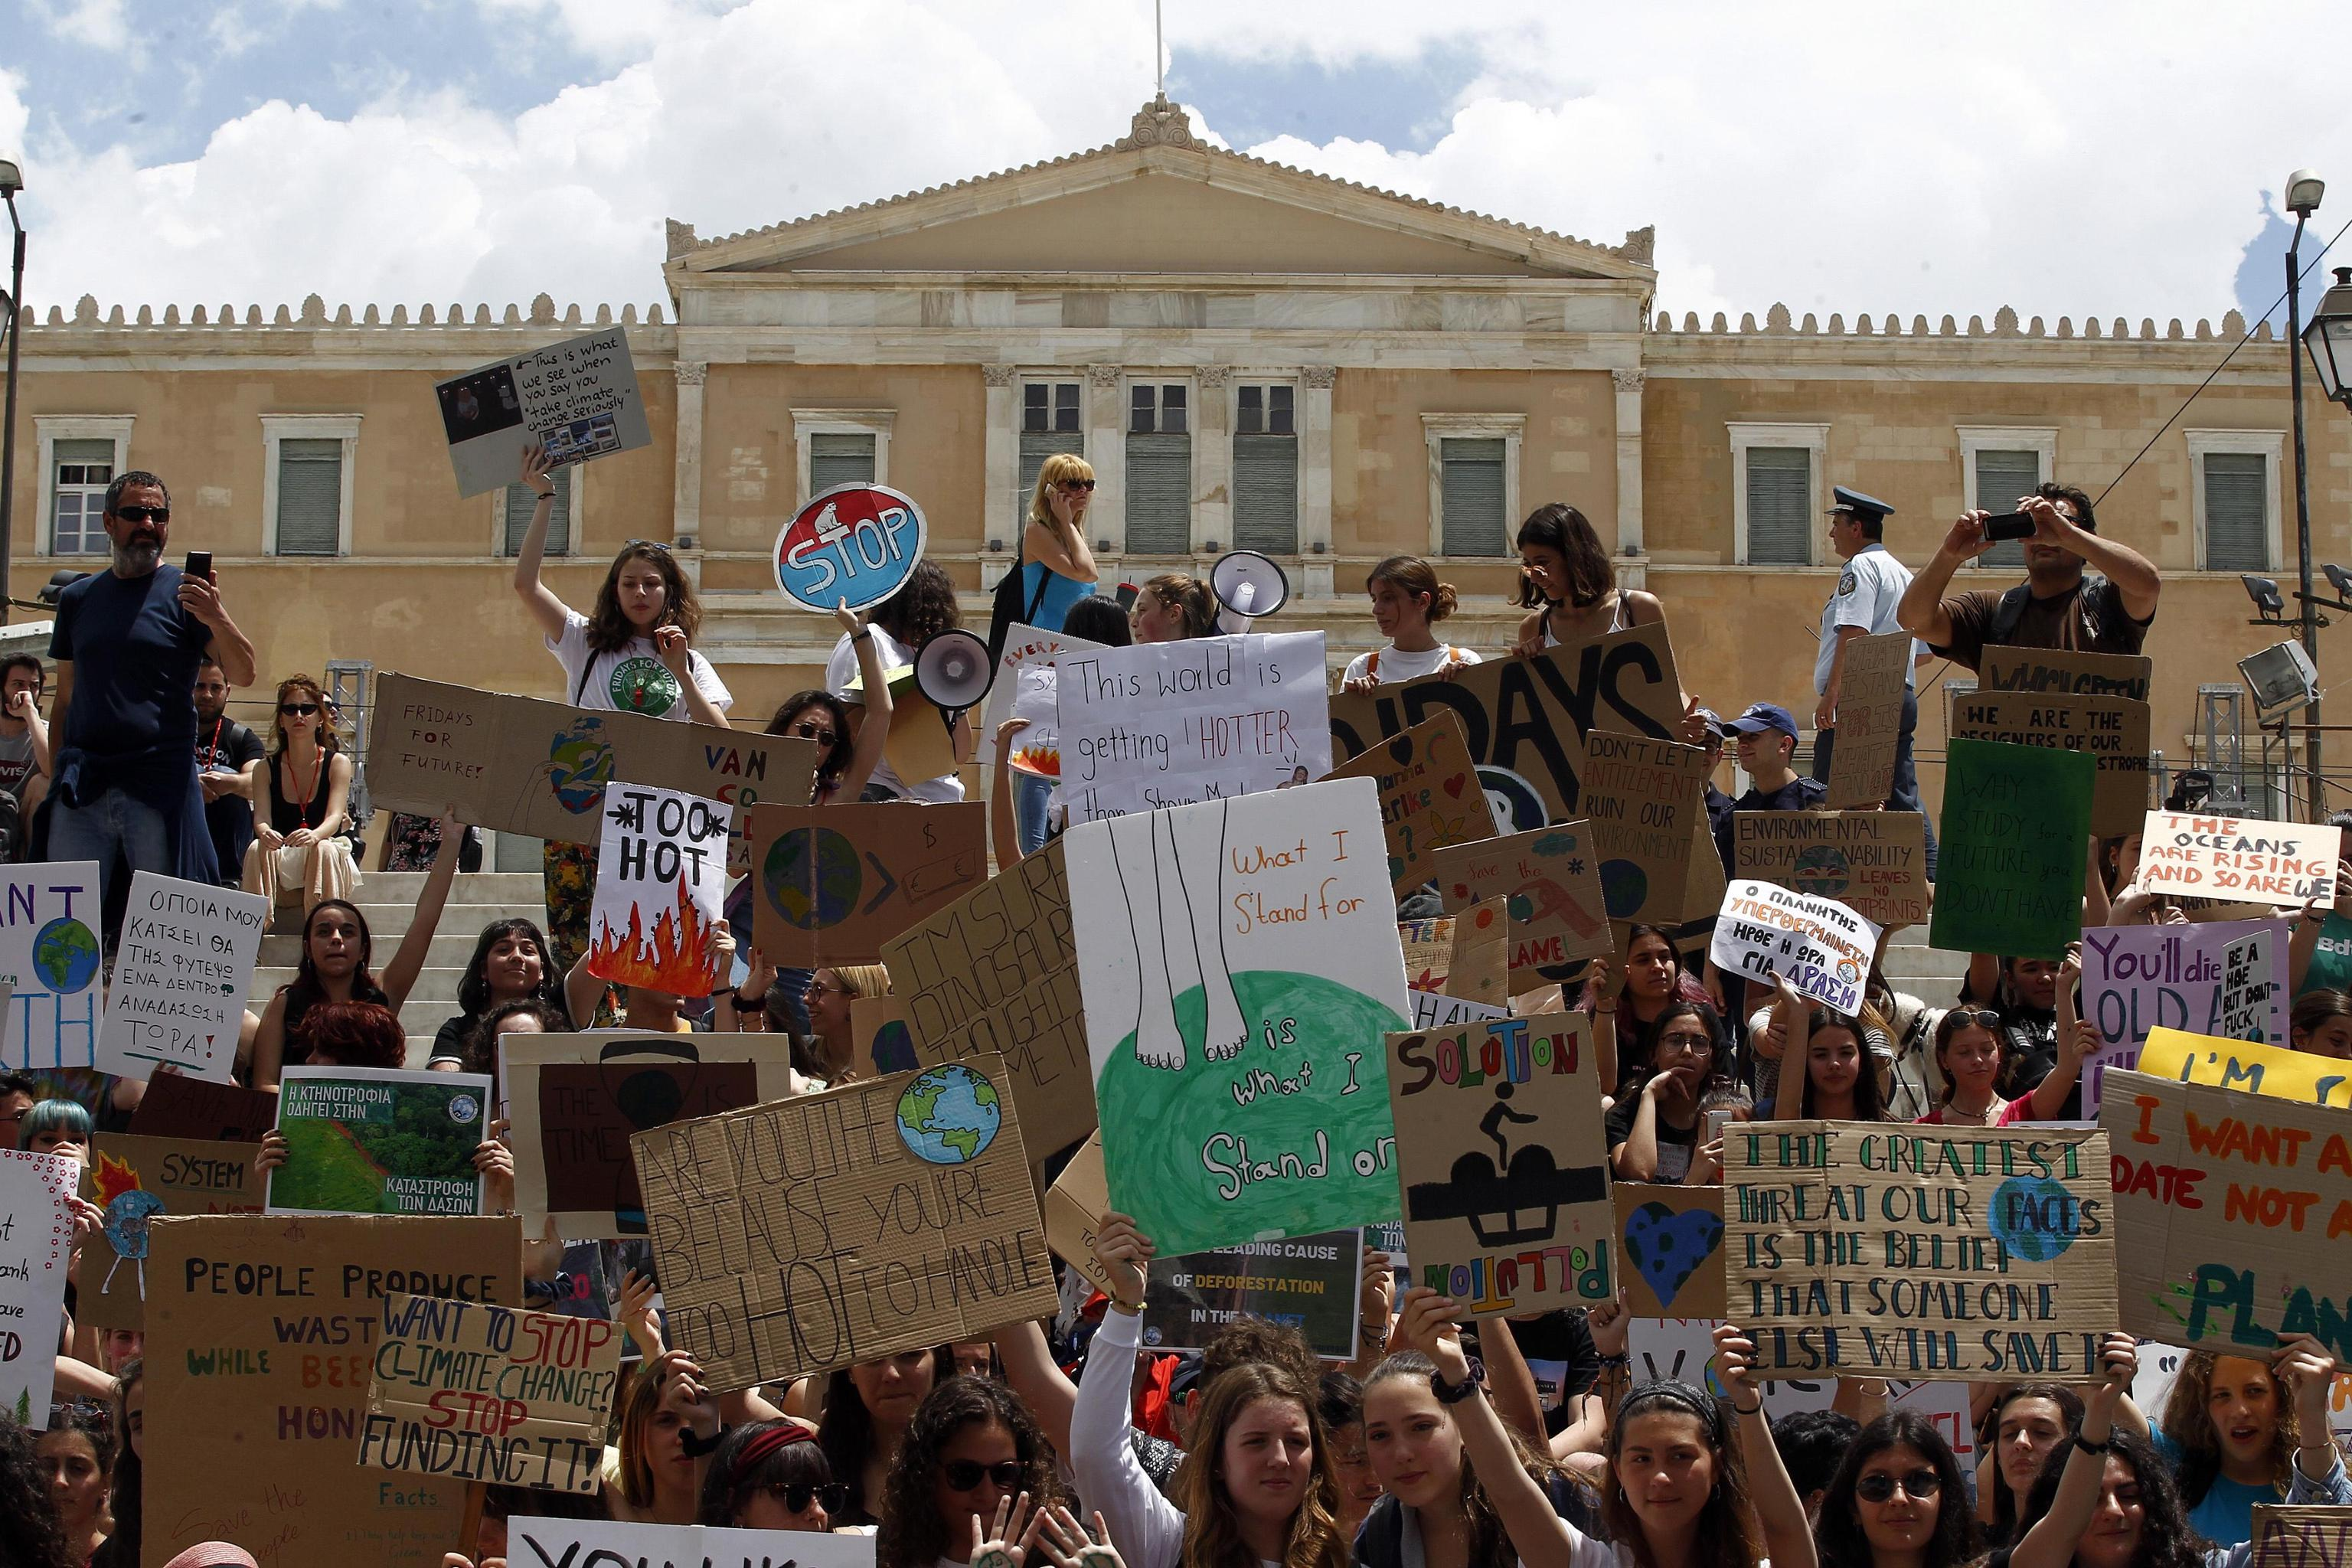 epa07597089 Students take part in a demonstration against climate change during a 'Fridays for Future' in front of the greek parliament, in Athens, Greece, 24 May 2019. Youth and students across the world are taking part in a student strike movement called #FridayForFuture which was sparked by Greta Thunberg of Sweden, a sixteen year old climate activist who has been protesting outside the Swedish parliament every Friday since August 2018.  EPA/ALEXANDROS VLACHOS